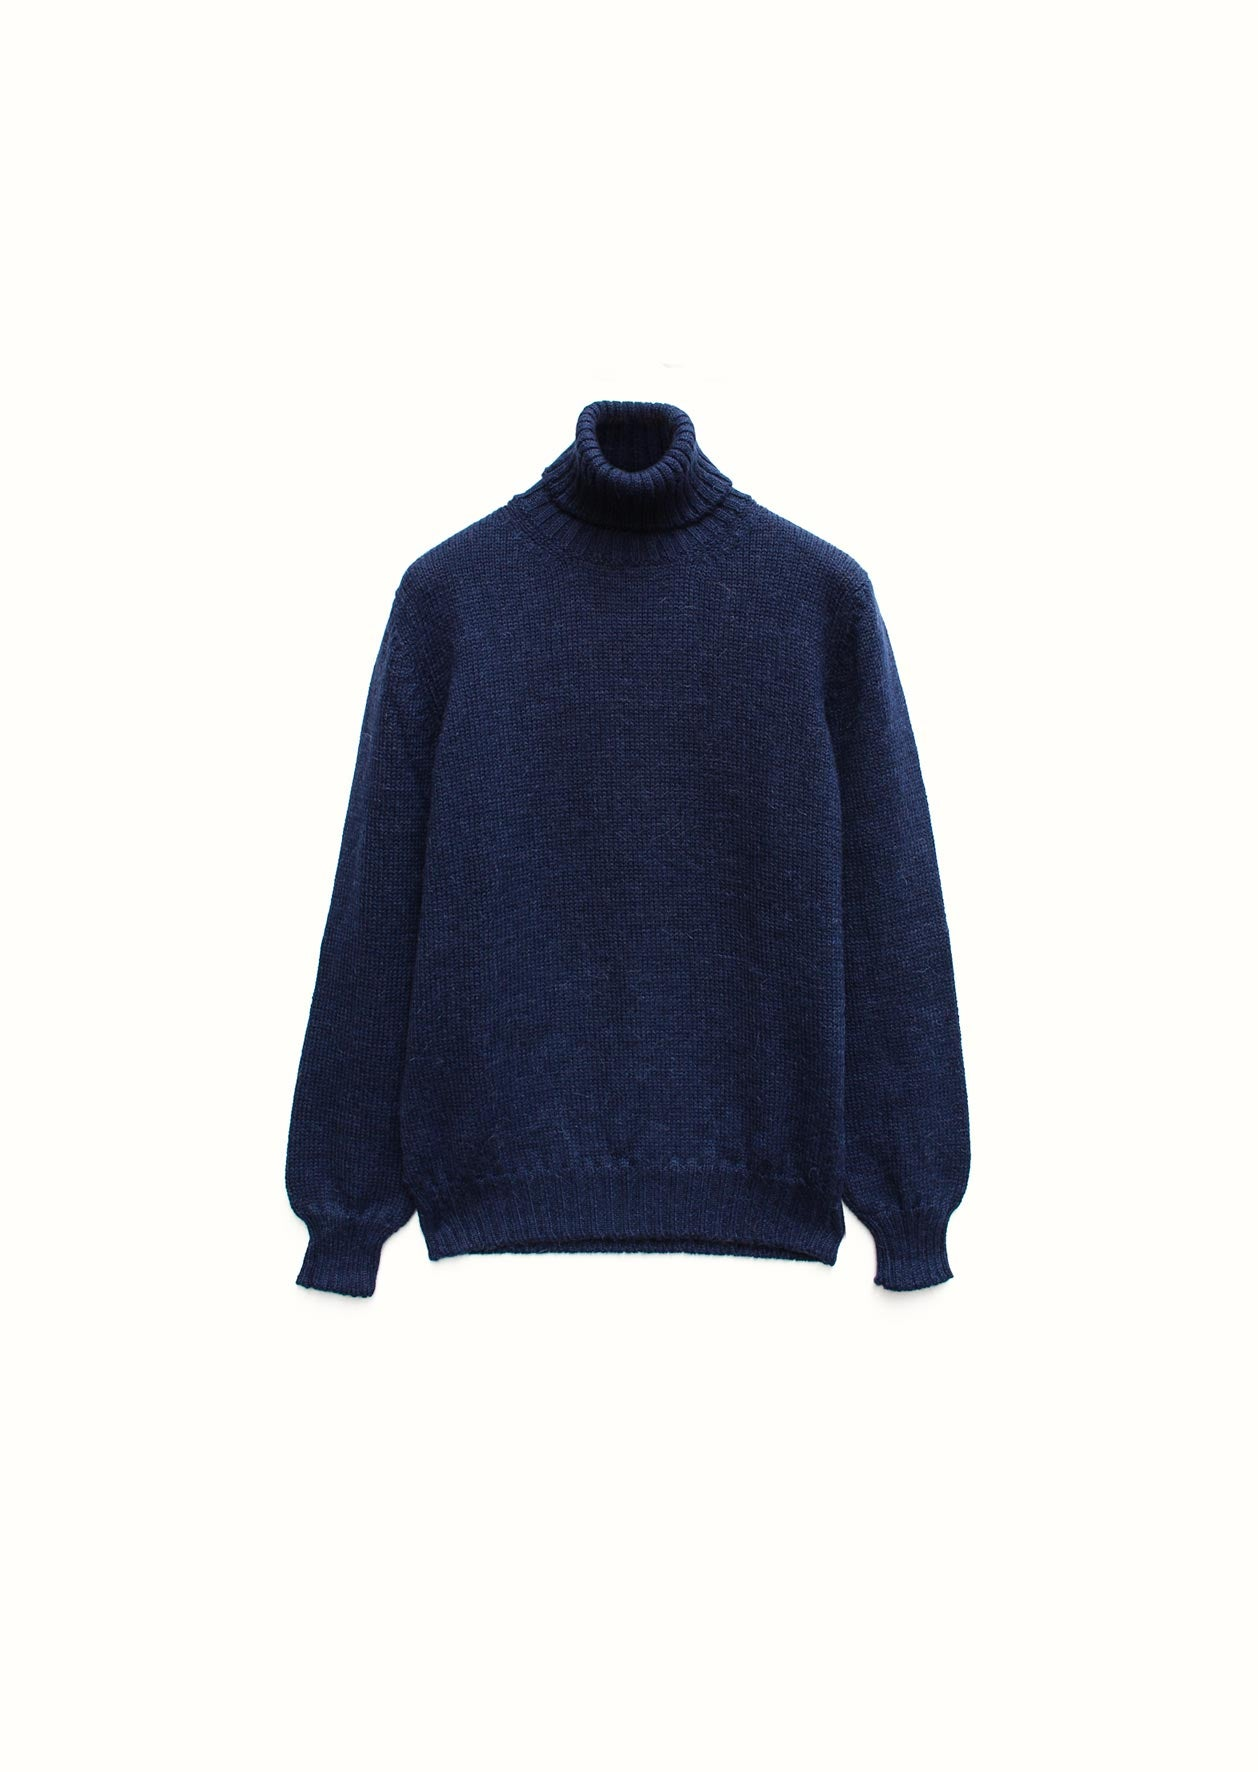 Turtle neck sweater - Peruvian superfine alpaca blend - Ink blue - De Bonne Facture